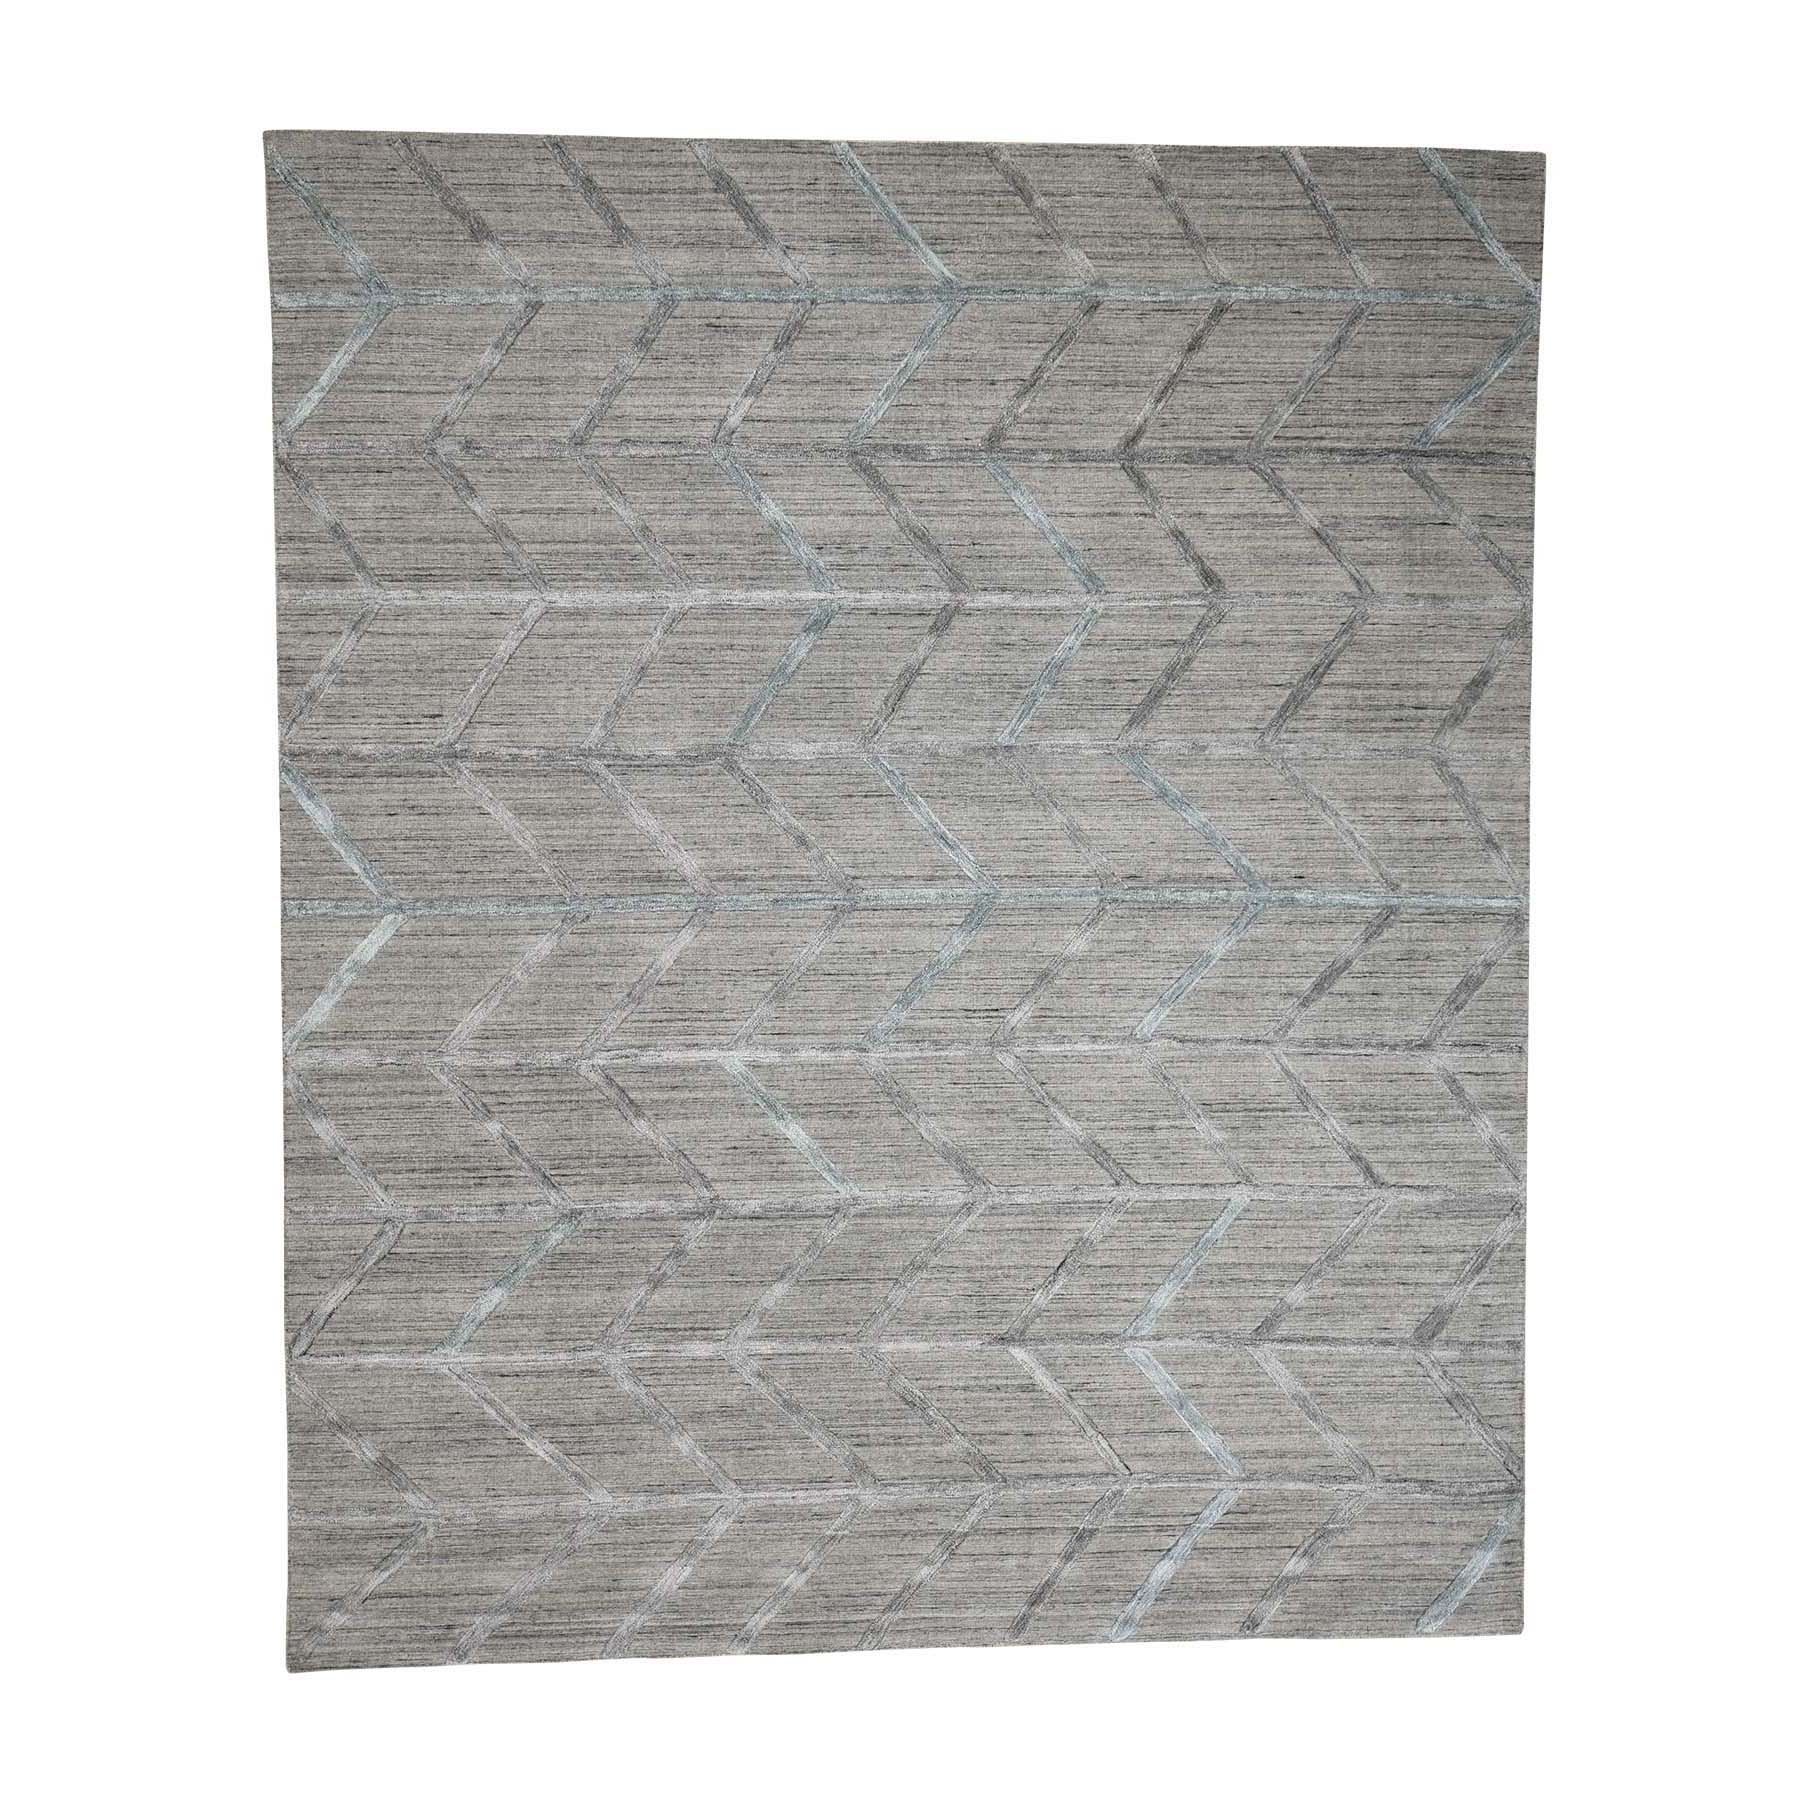 Mid Century Modern Collection Hand Loomed Grey Rug No: 0179068